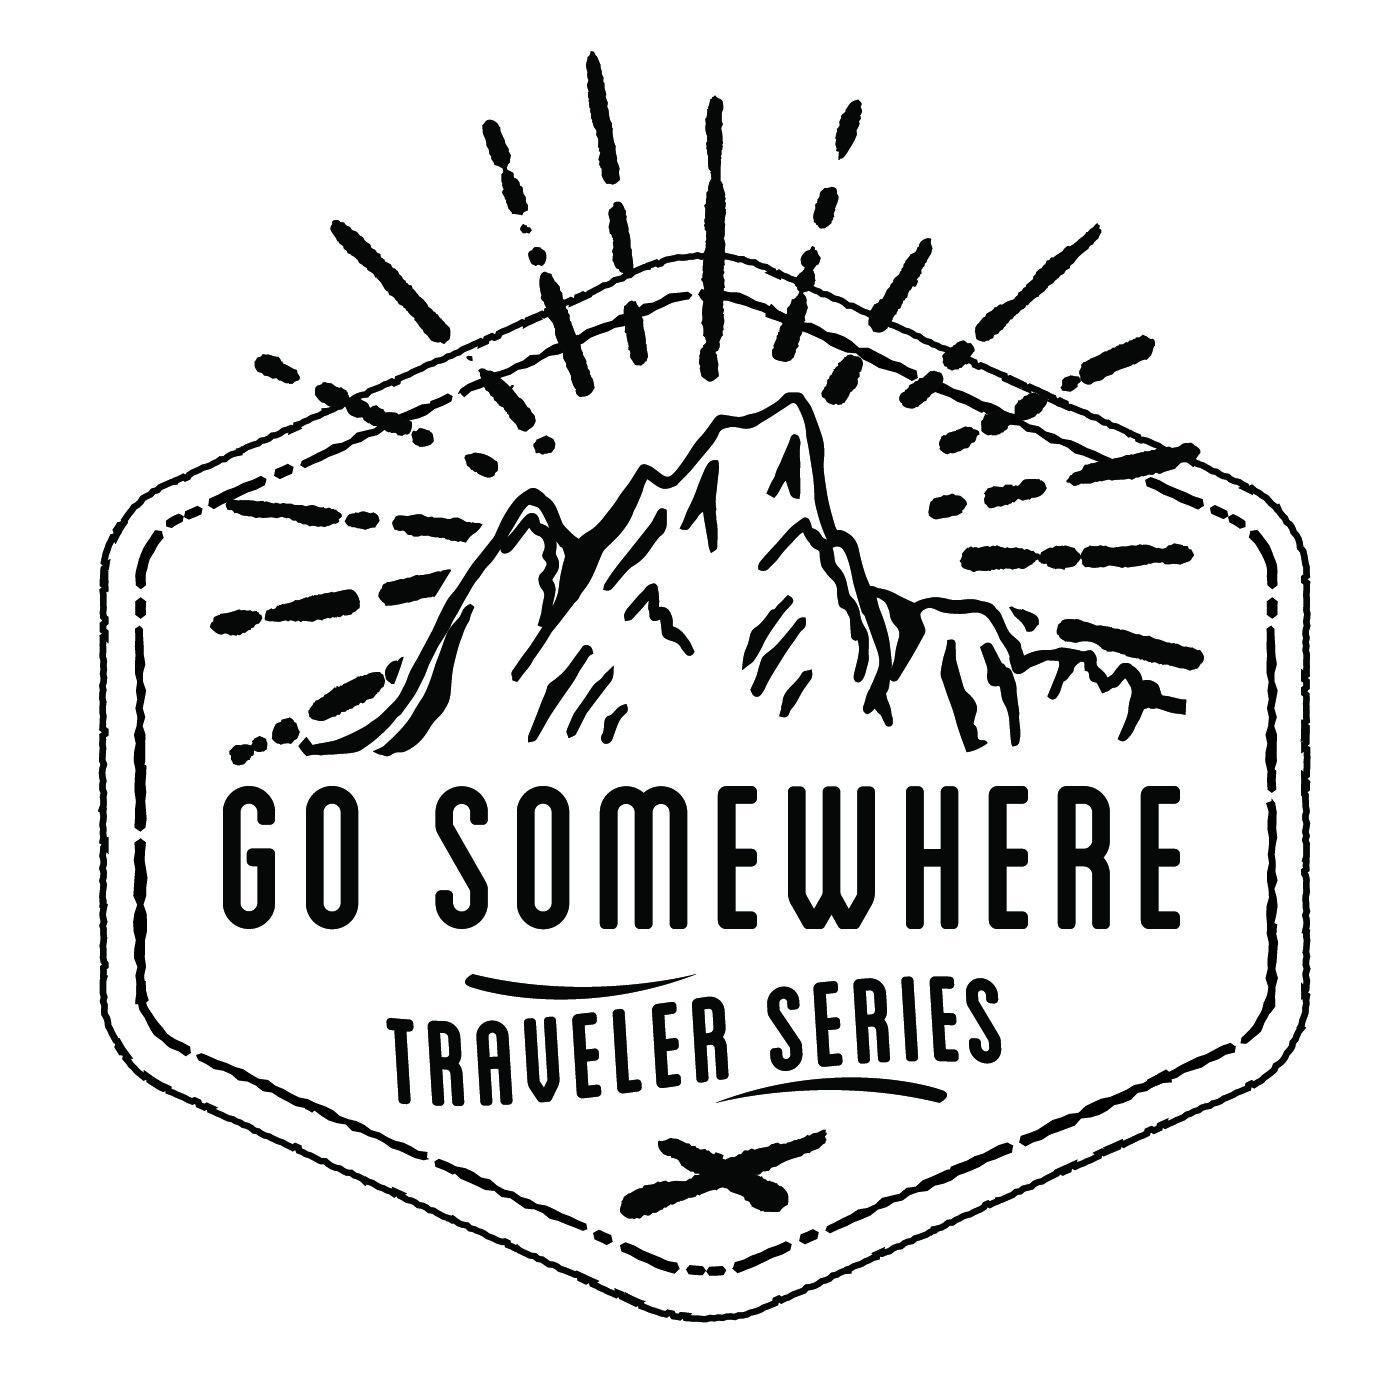 Go Somewhere Traveler Series-02.jpg